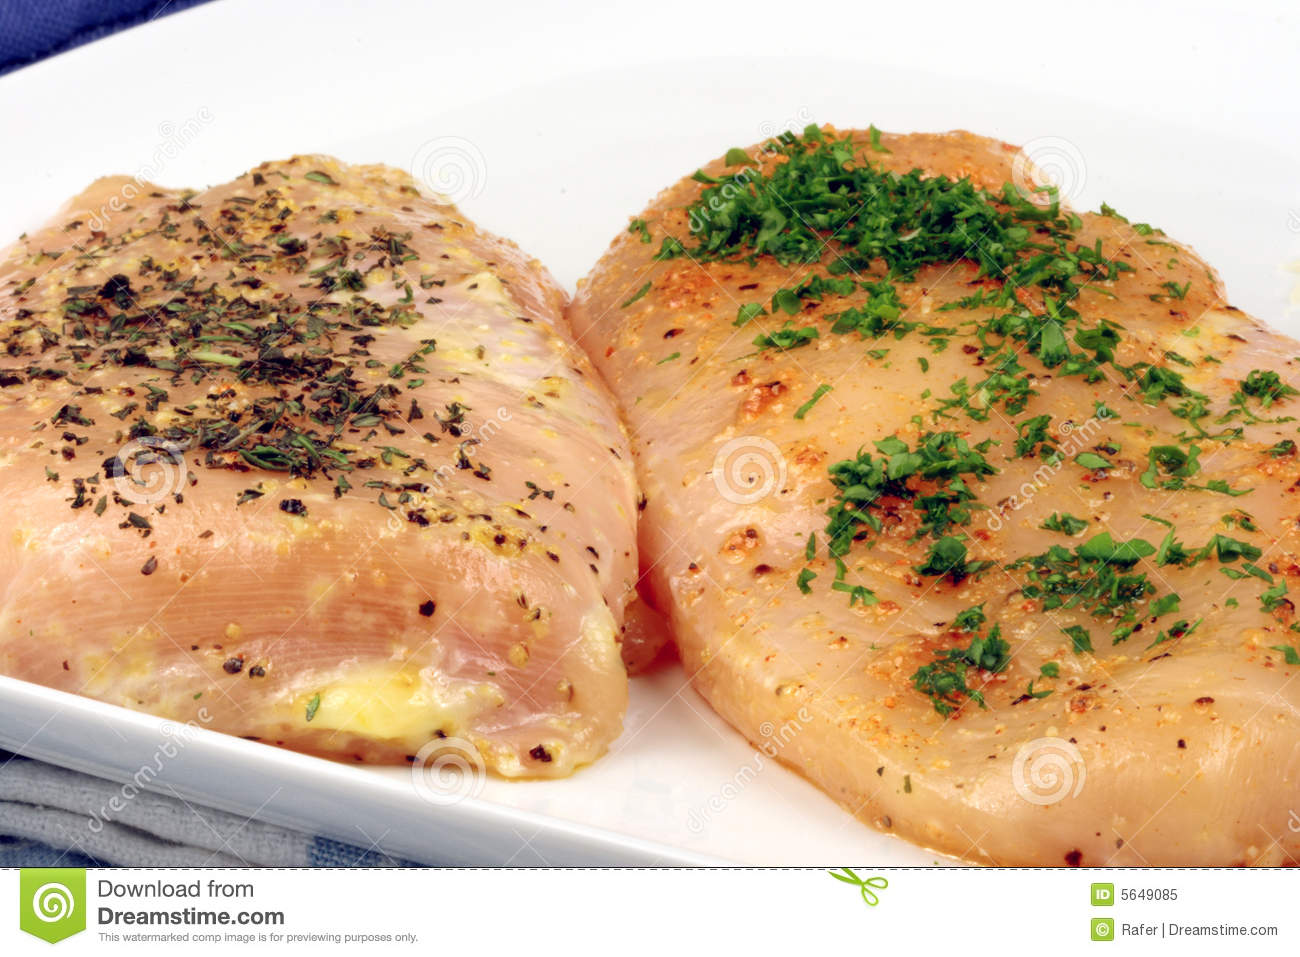 How To Cook A Juicy Chicken Breast Recipes — Dishmaps